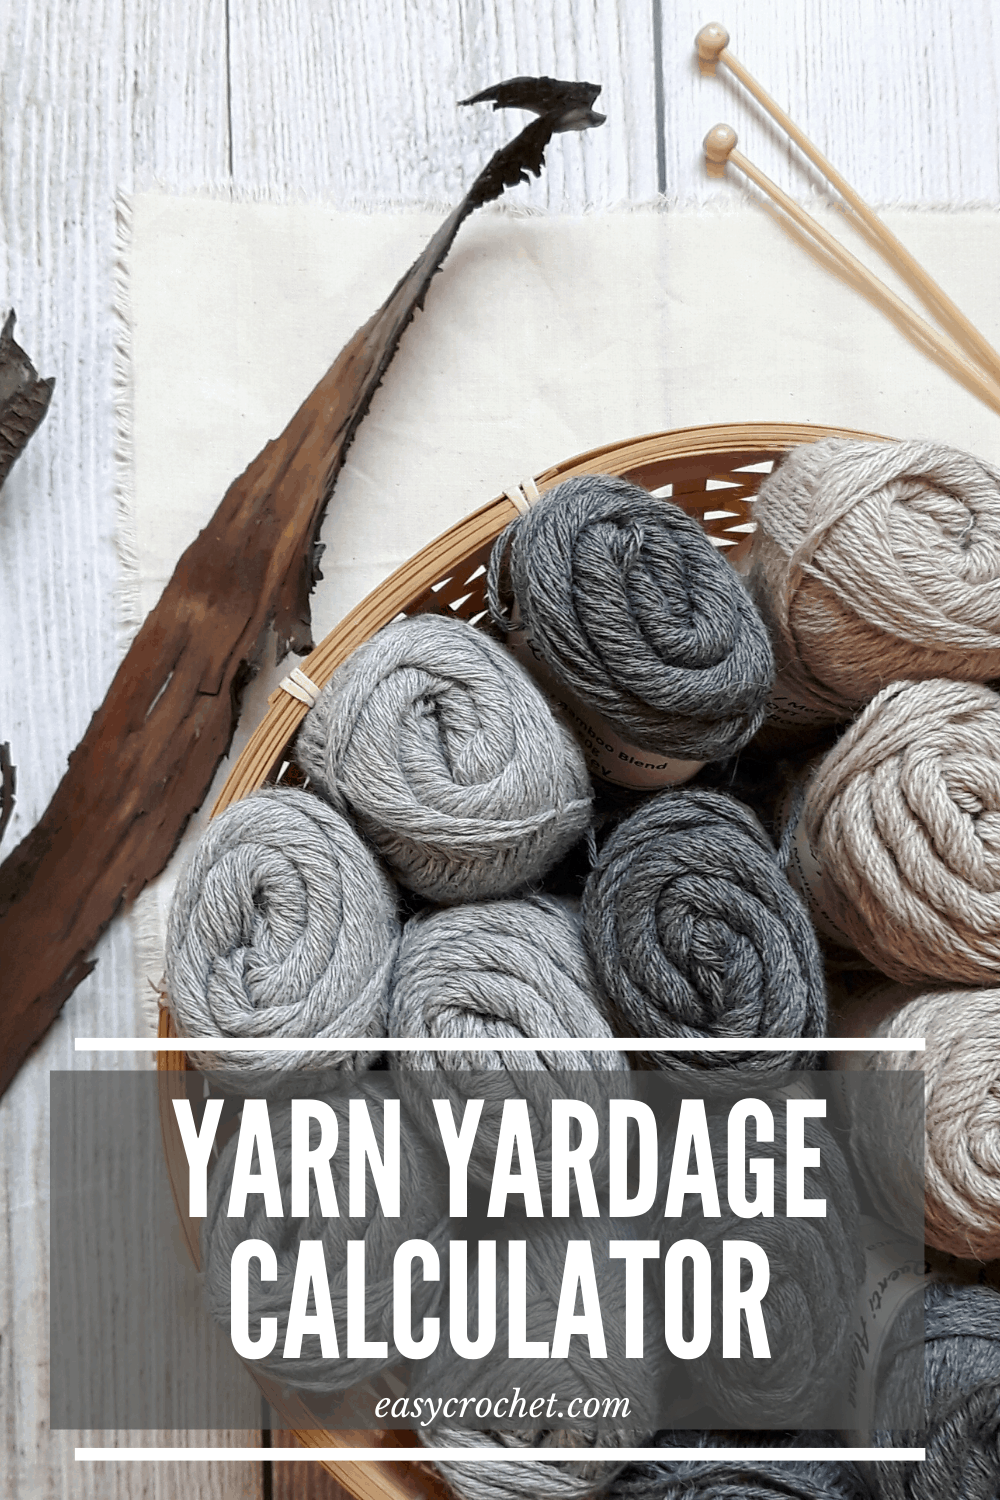 Free Yarn Yardage Calculator. Figure out how much yarn you used in a project! Free tool for crocheters & knitters! via @easycrochetcom